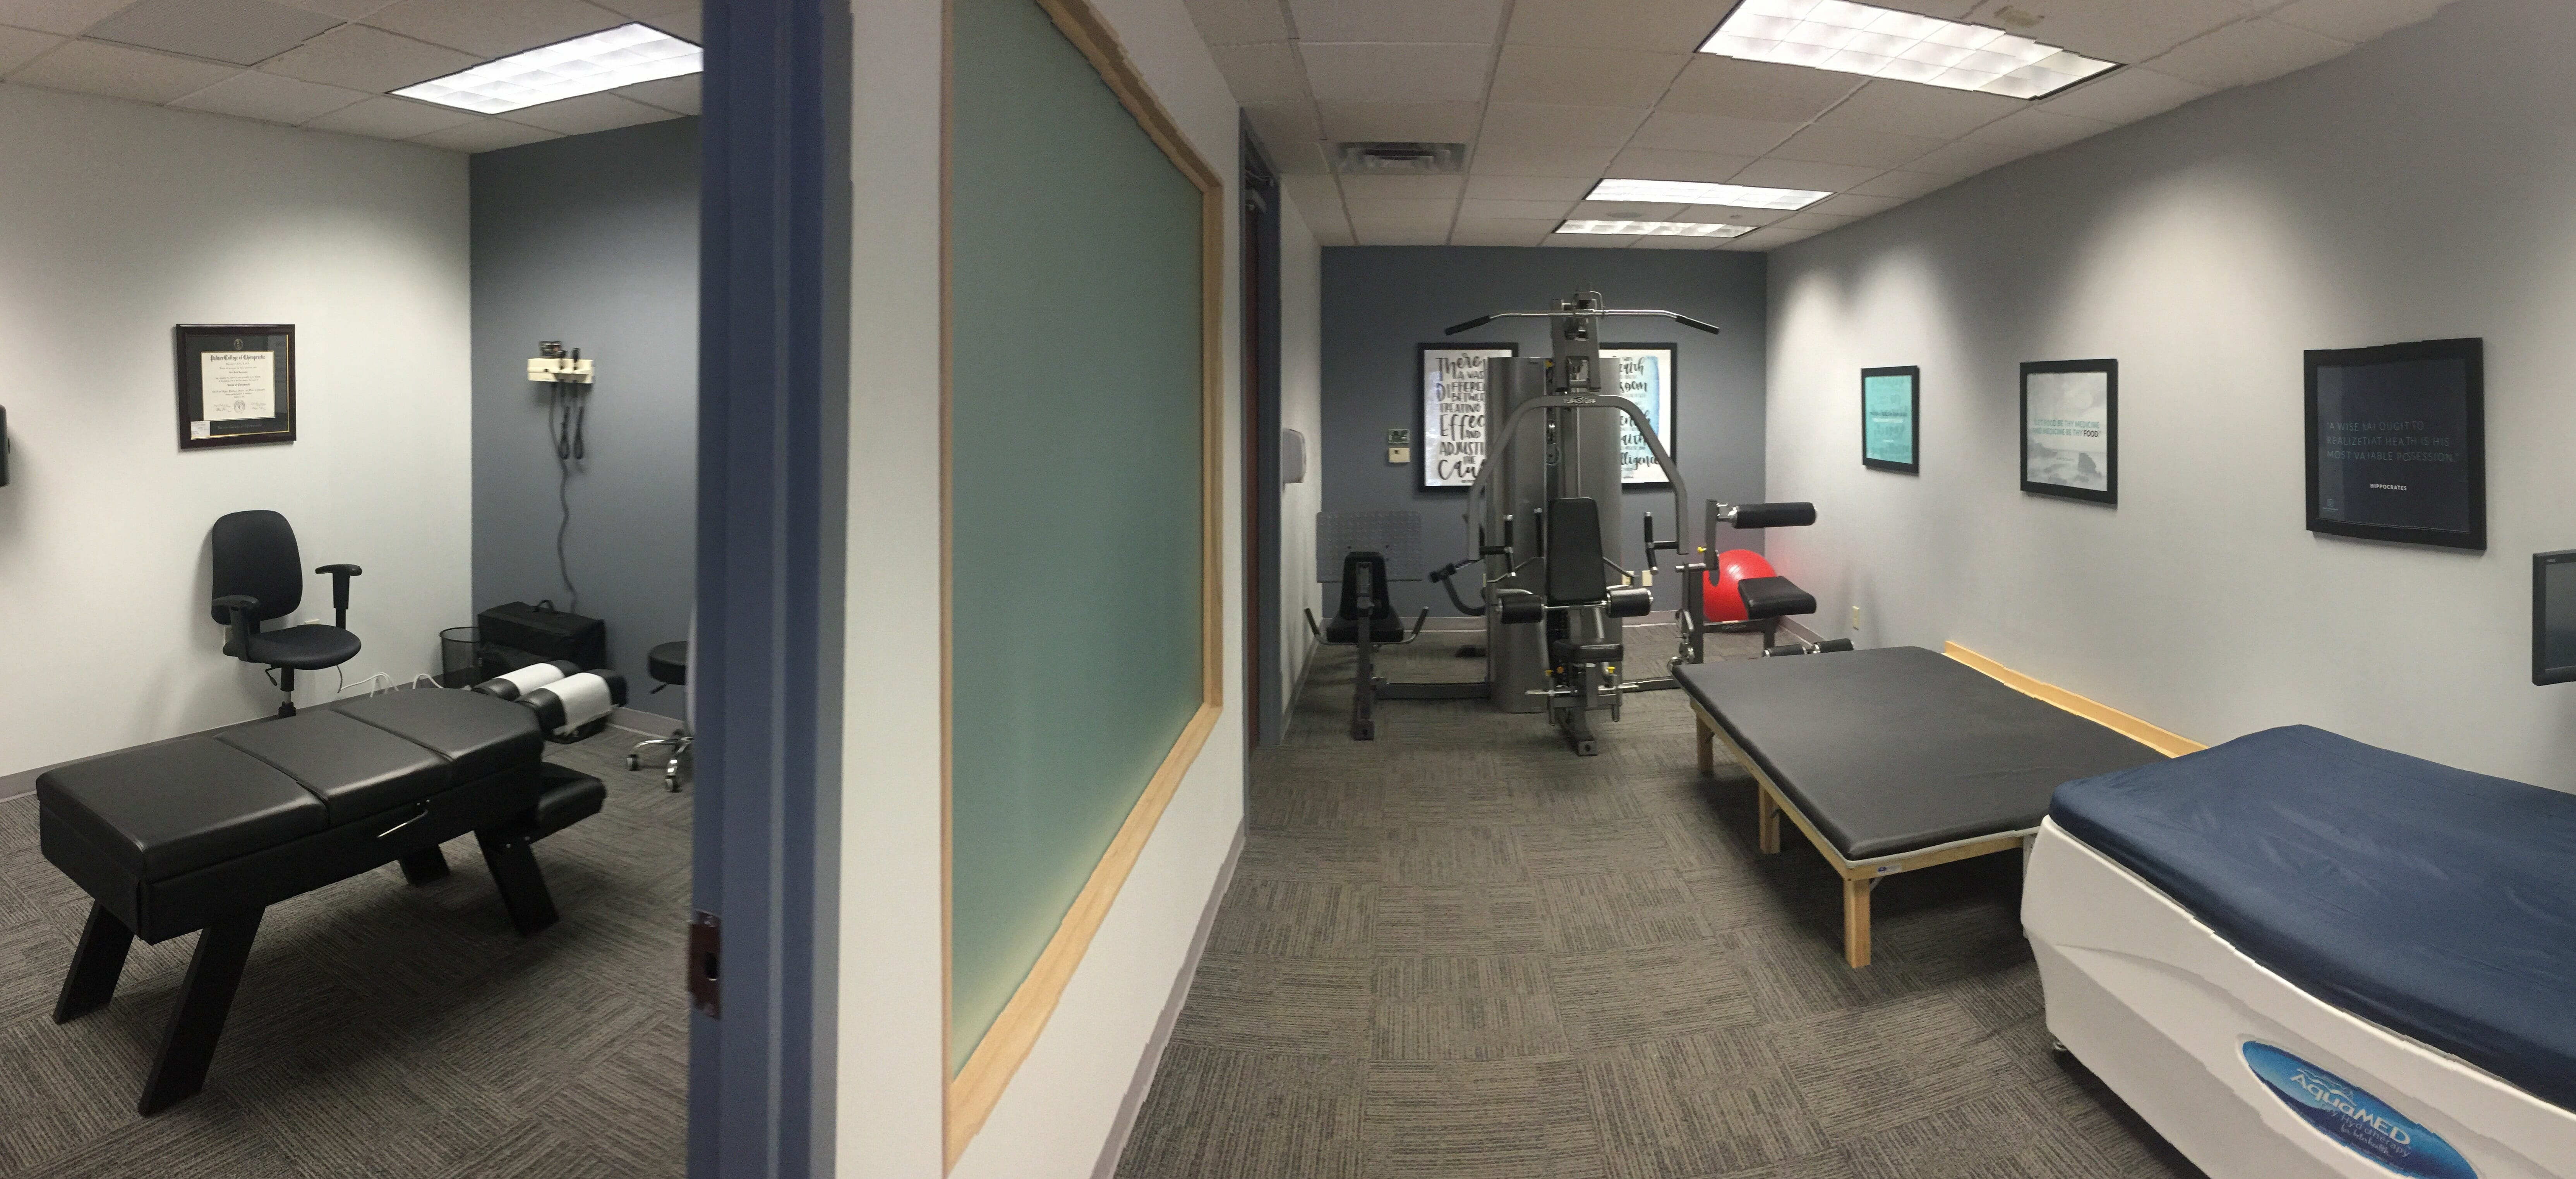 We're Finally Open at Ascent Sports & Wellness Chiropractic!